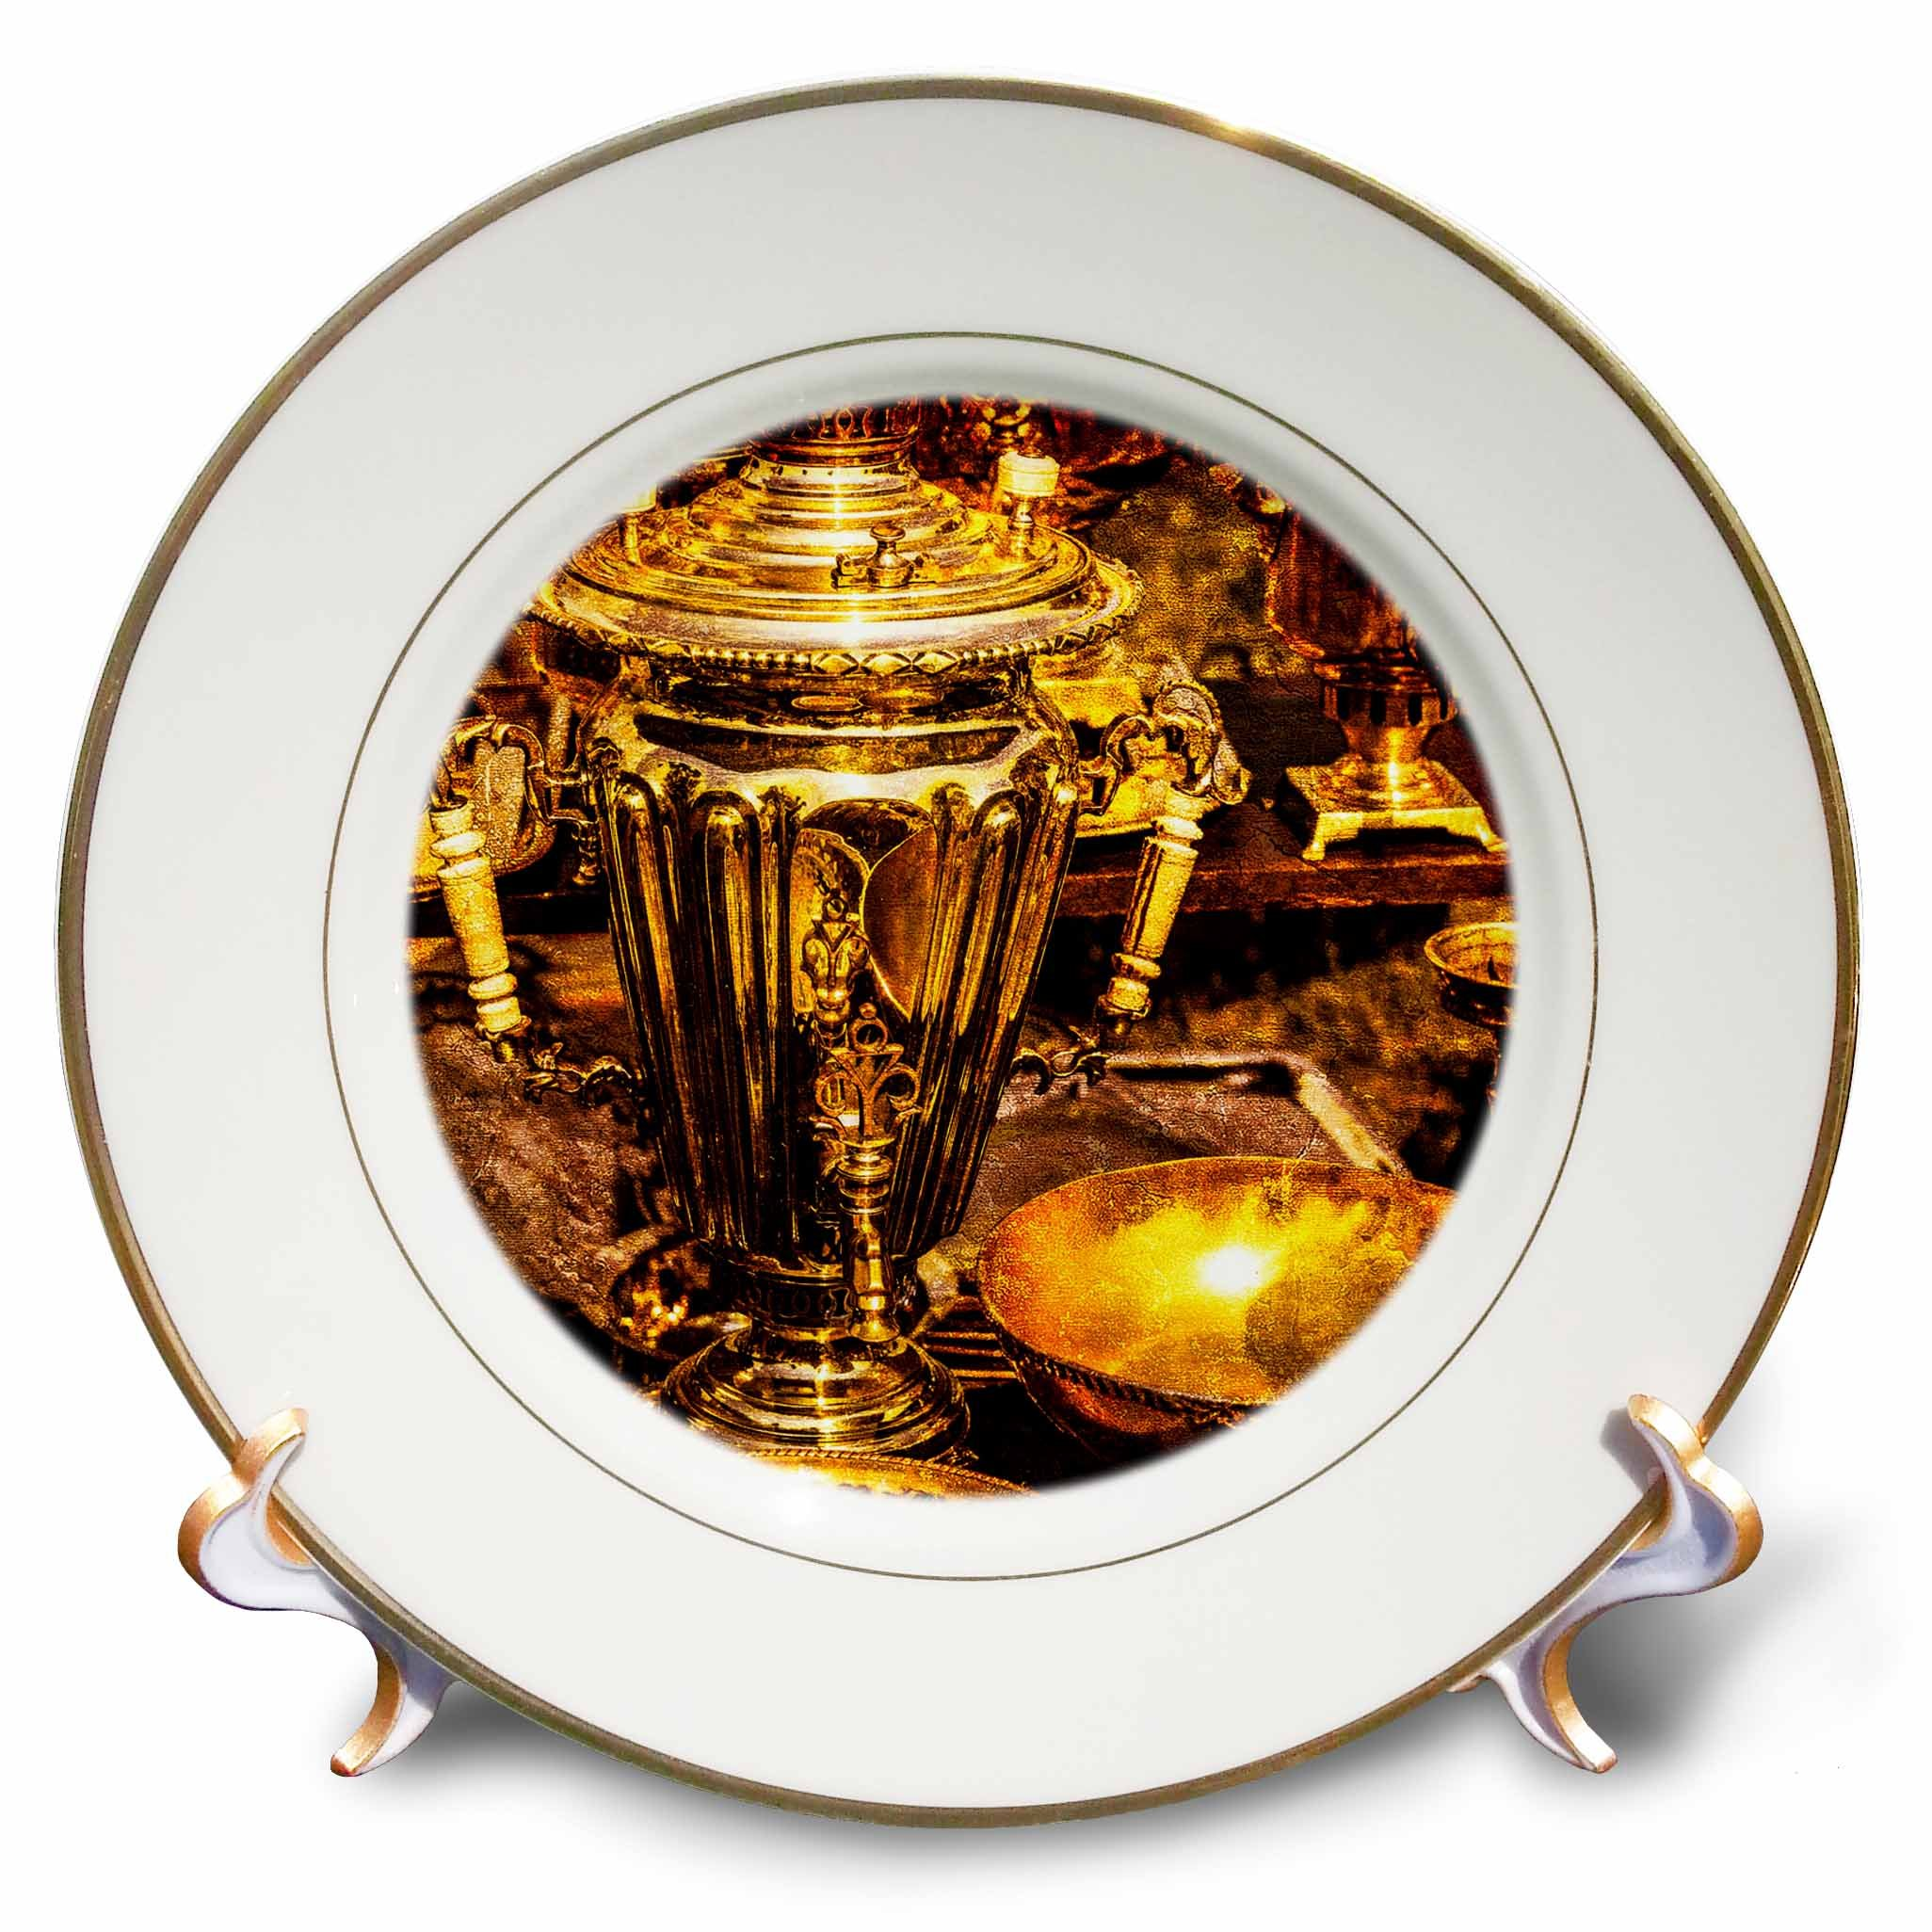 3dRose Alexis Photography - Objects - Golden age technologies - Samovar or fire tea pot. Stylized photo - 8 inch Porcelain Plate (cp_270870_1)